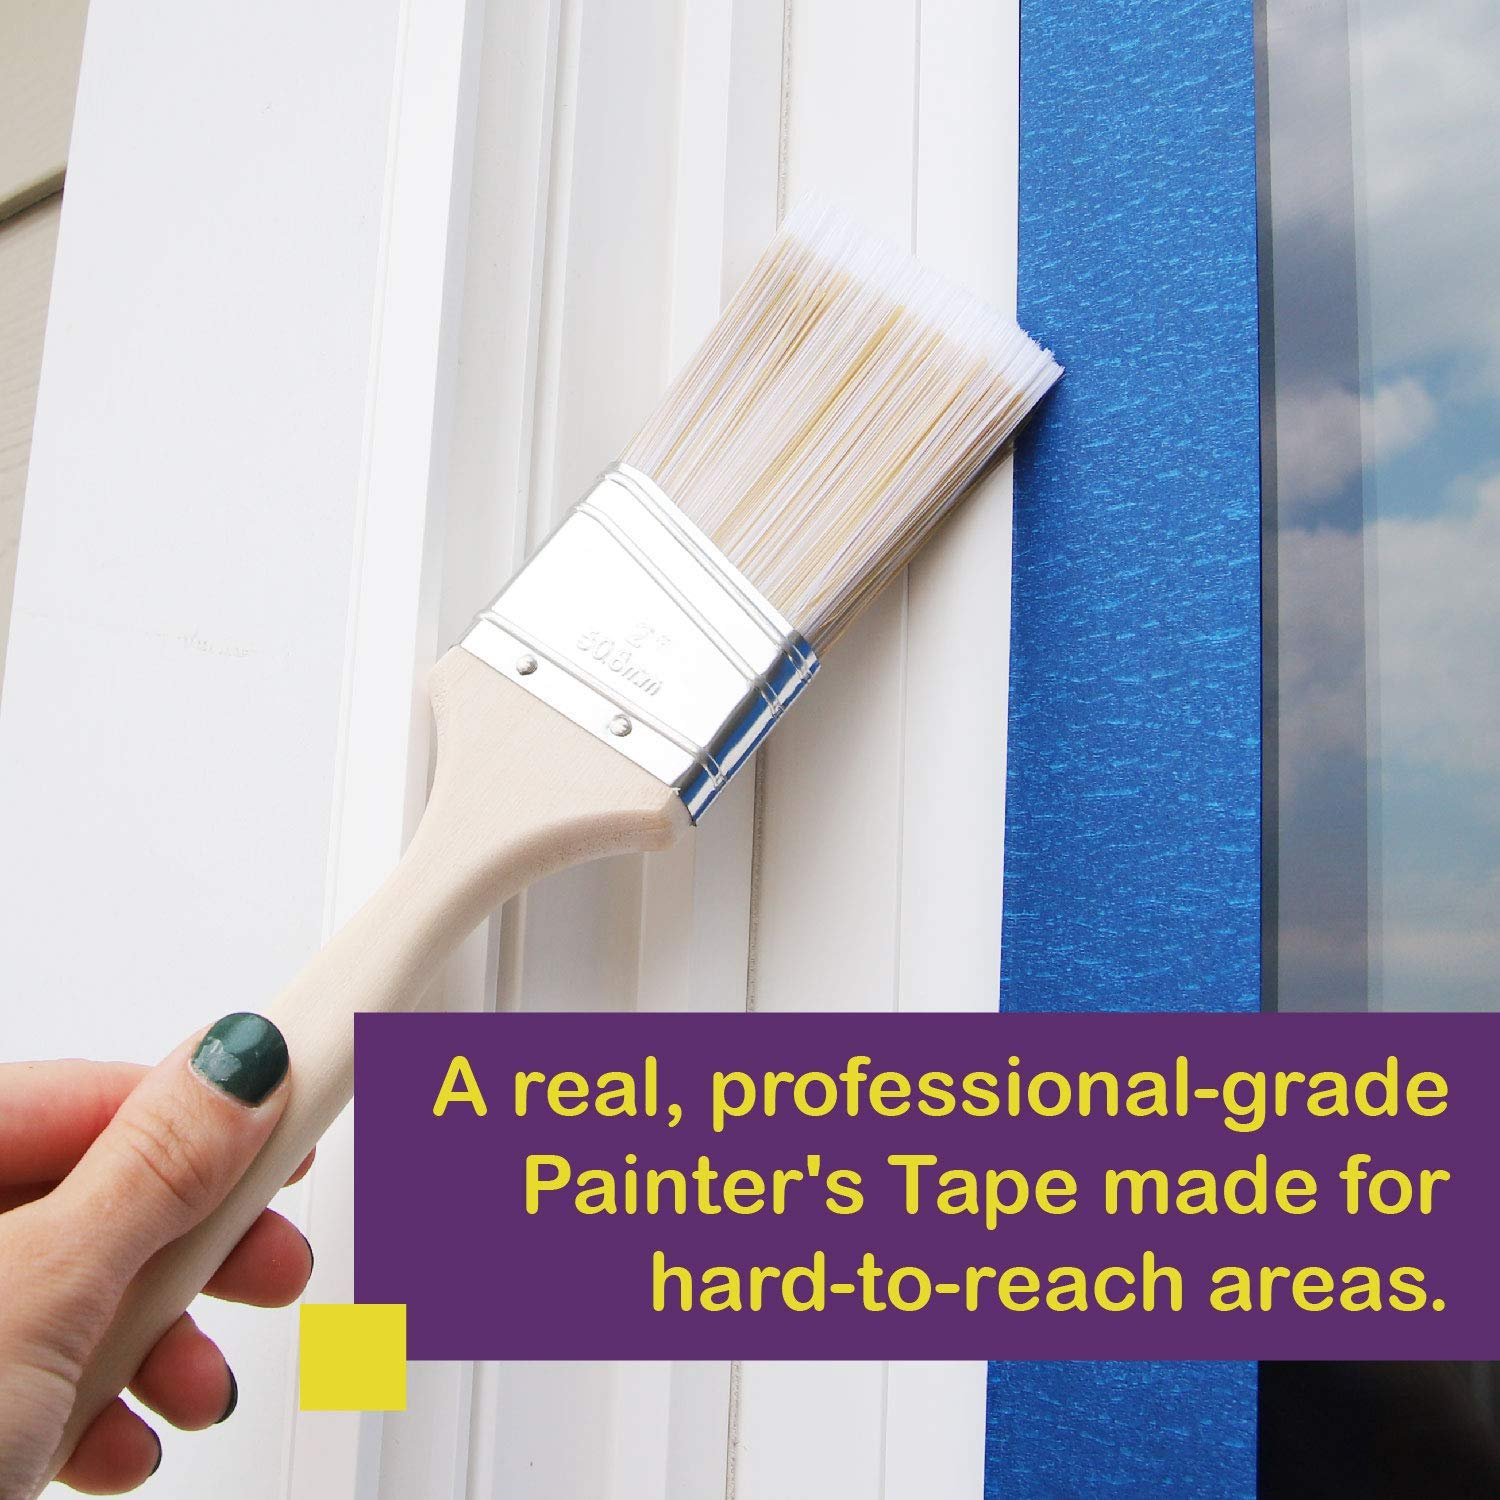 ATack Professional Blue Painters Tape Produces Sharp Lines and Residue-Free Artisan Grade Clean Release Wall Trim Tape 2 x 60 Yards Edge Lock Technology Single Roll